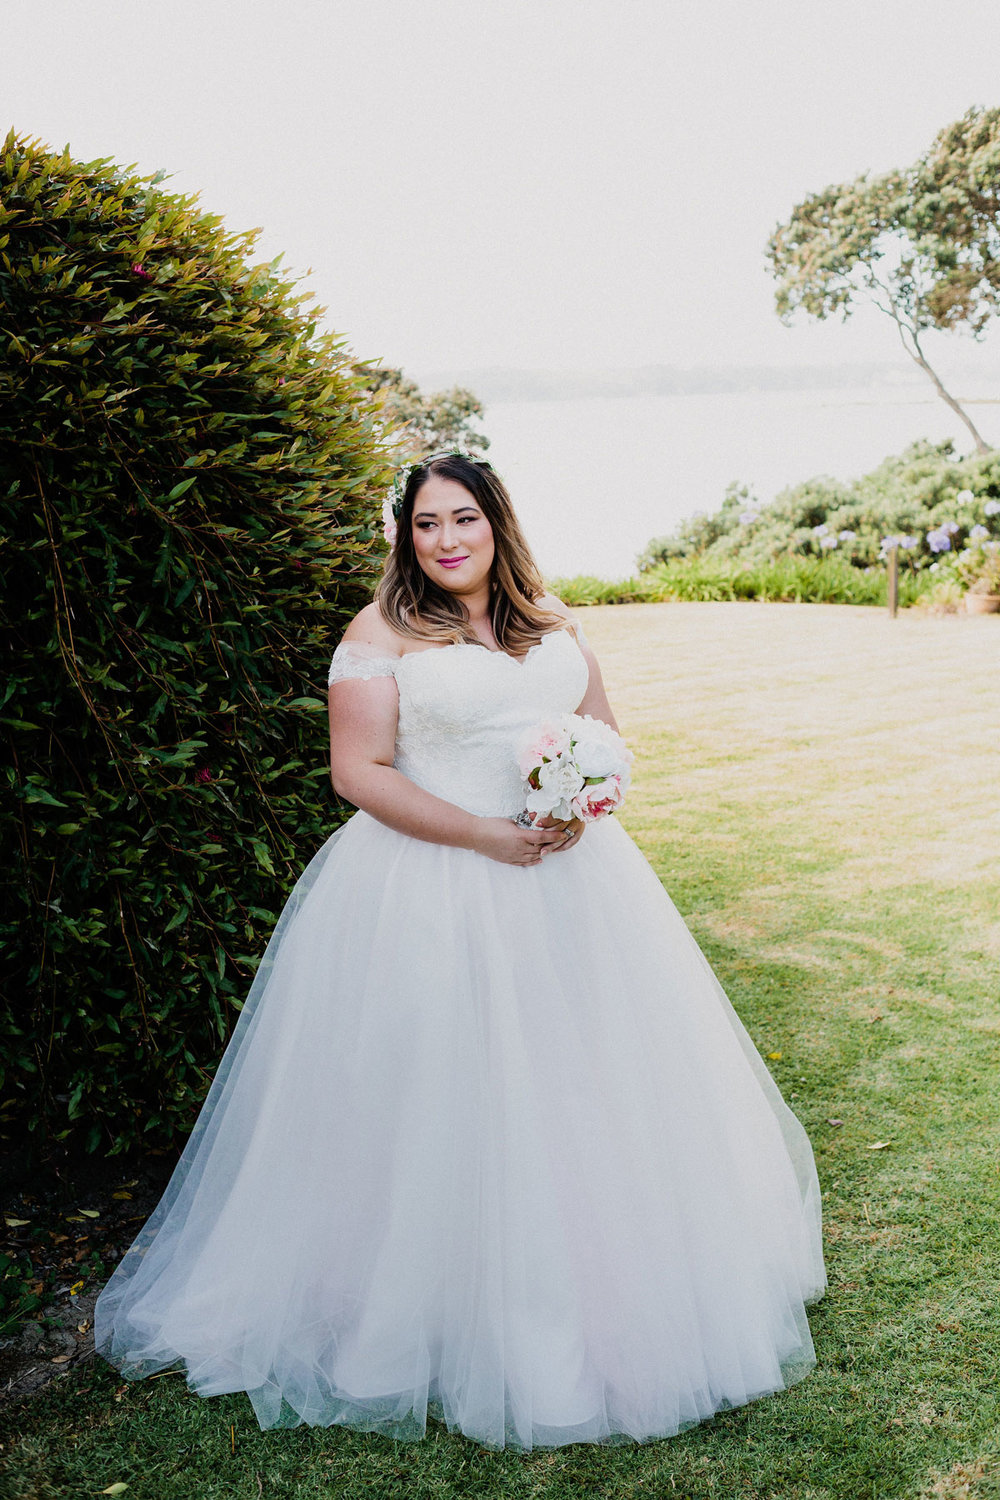 Relaxed Backyard Wedding |  Astra Bride Stevie | Cristina Rossi AK1101 | Pt Chevalier, Auckland | Joanna Wickham Photography